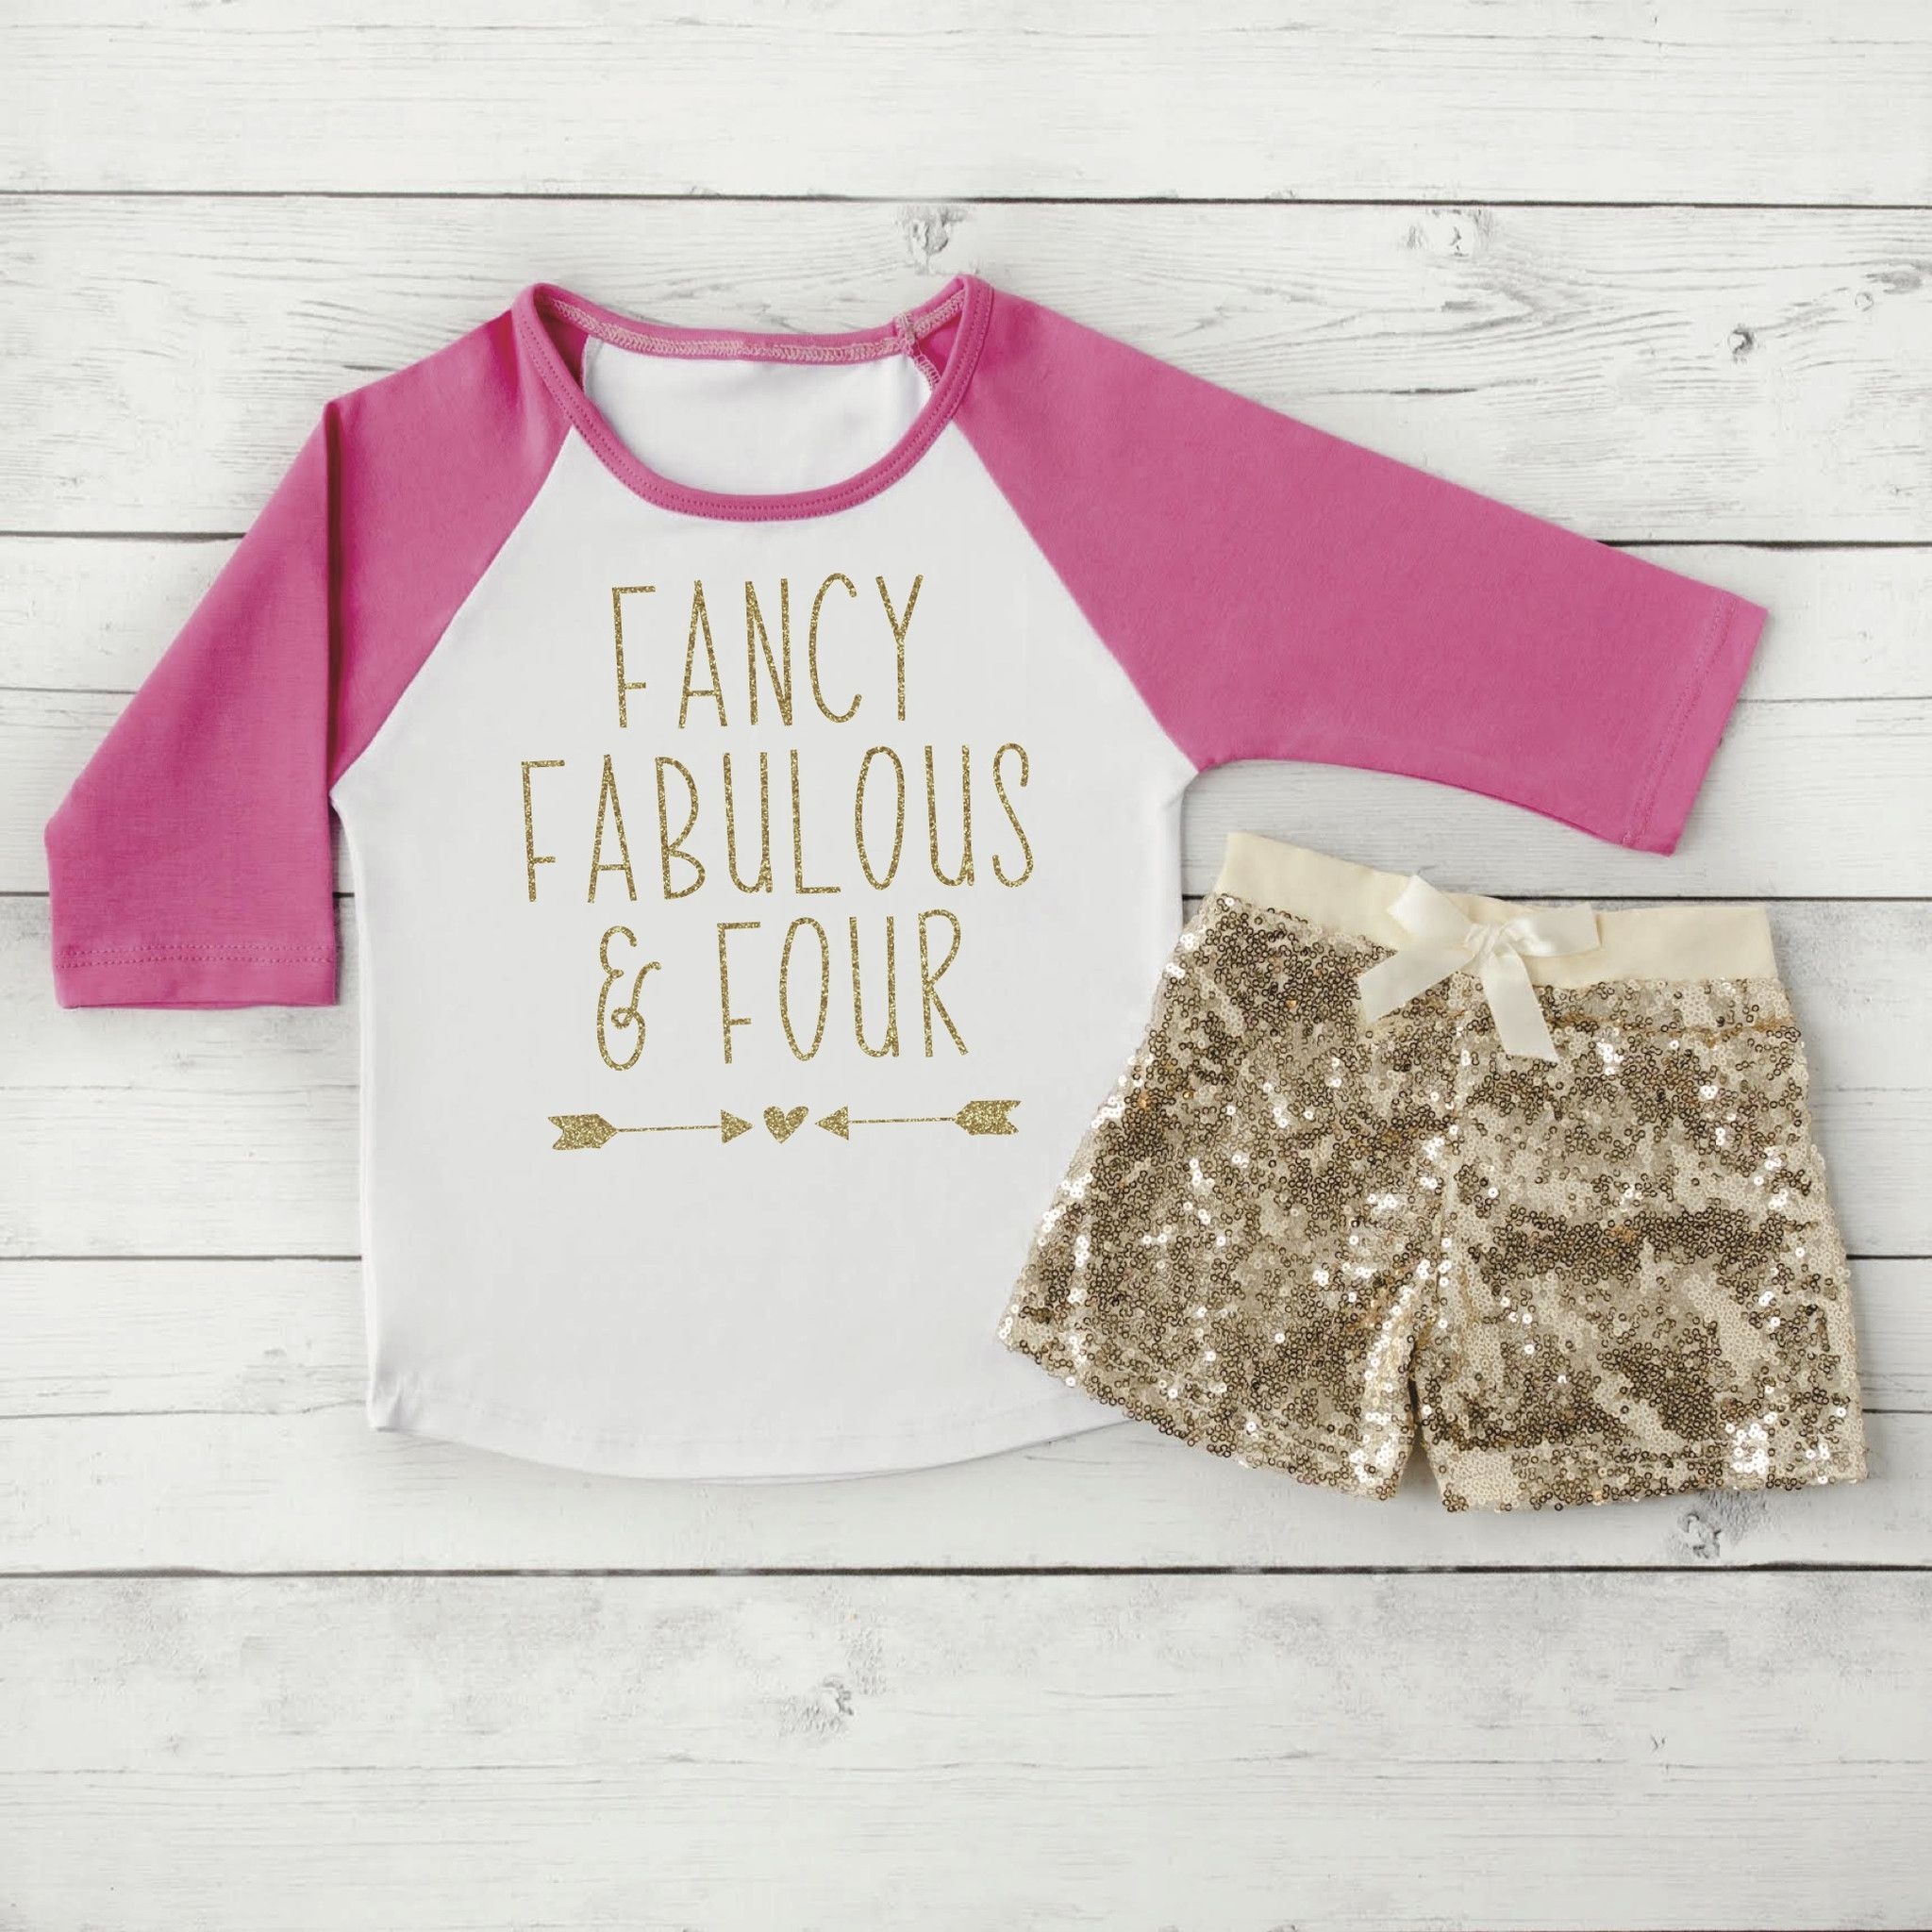 Fourth Birthday Outfit Girl 4 Year Old Birthday Shirt Fancy